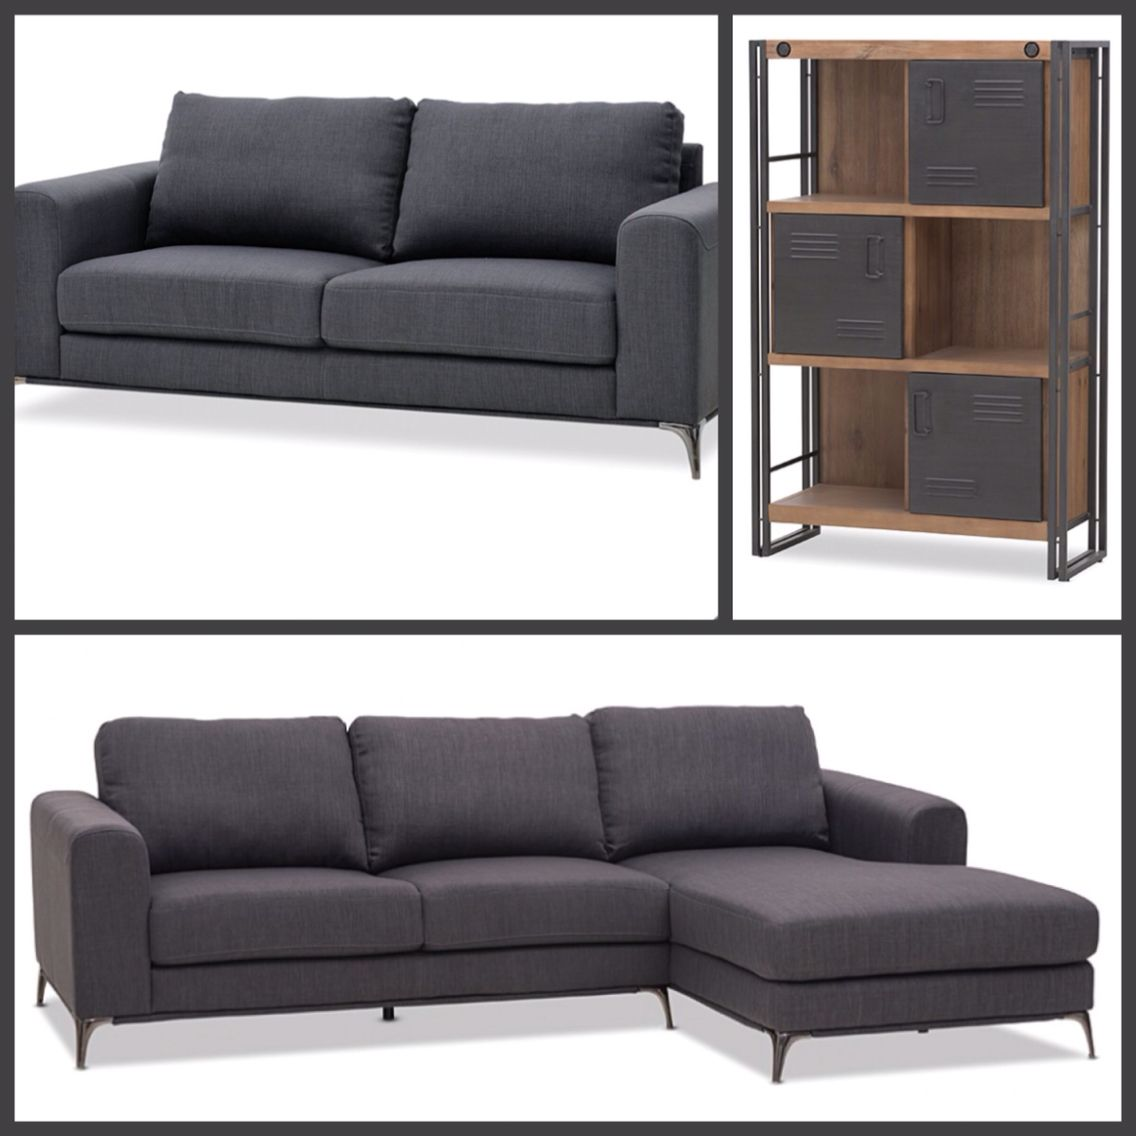 Super Amart Hurley Couches And City2 Bookcase